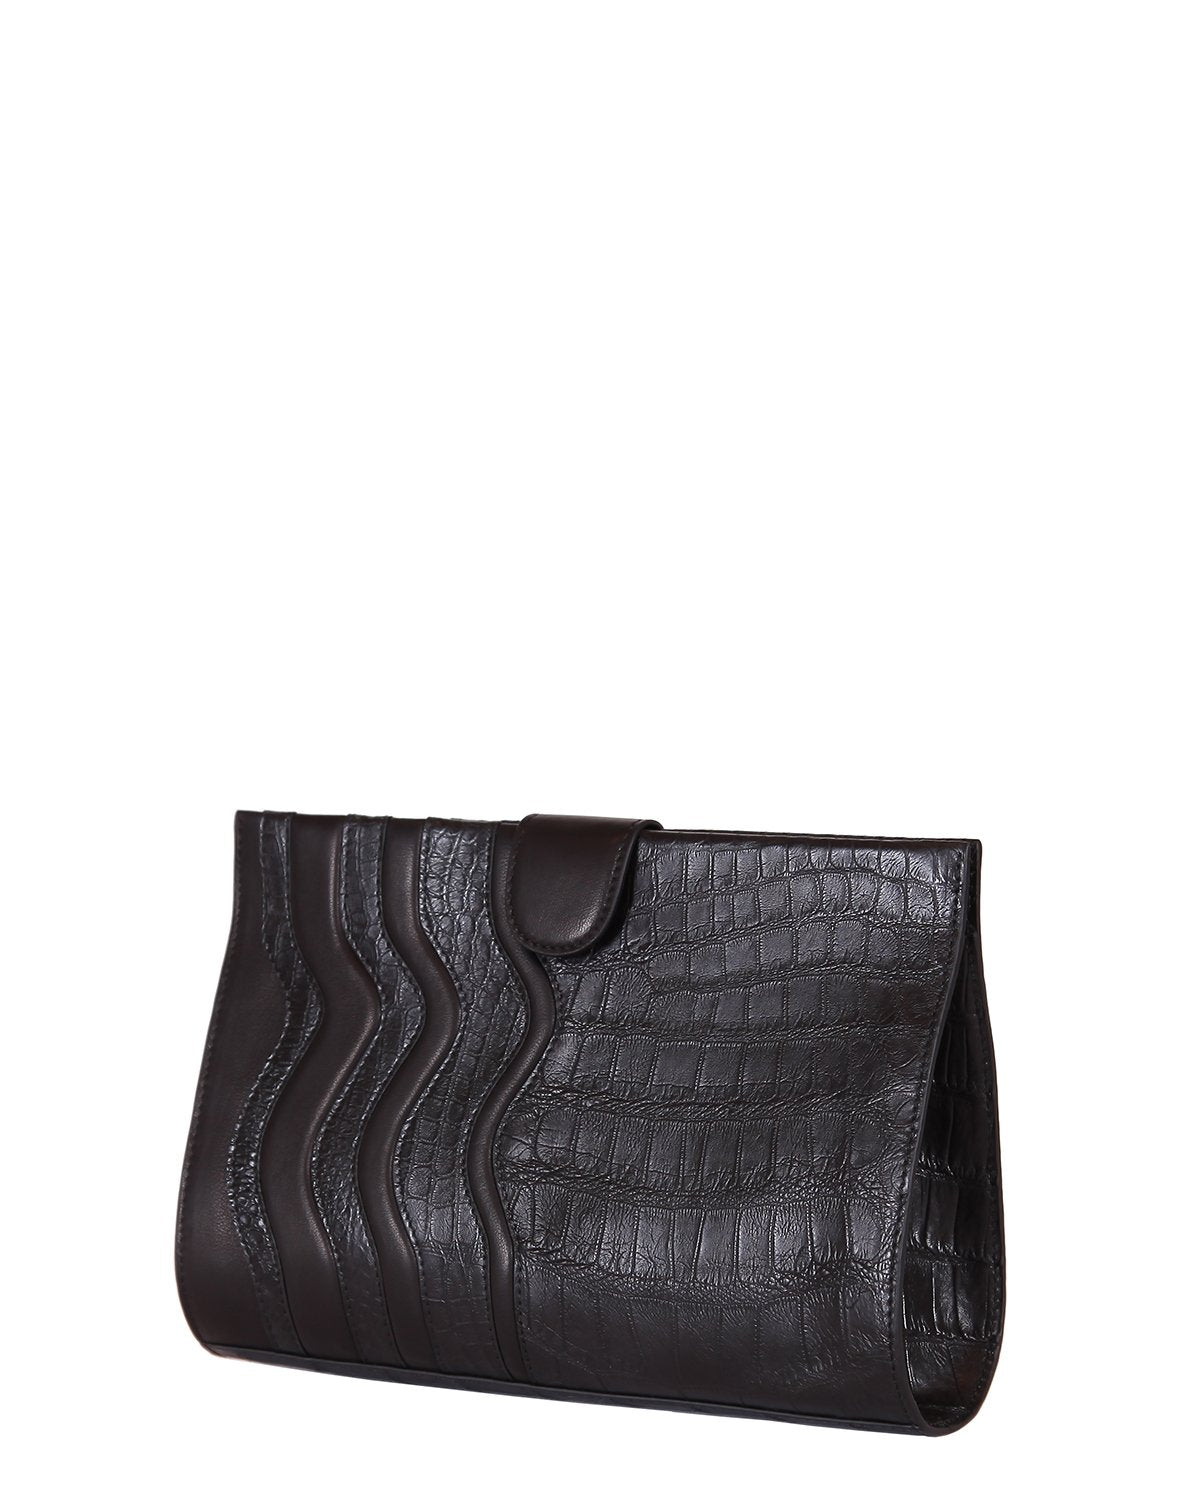 Black American Alligator Clutch with Lambskin Trims in black angle view comes with shoulder chain